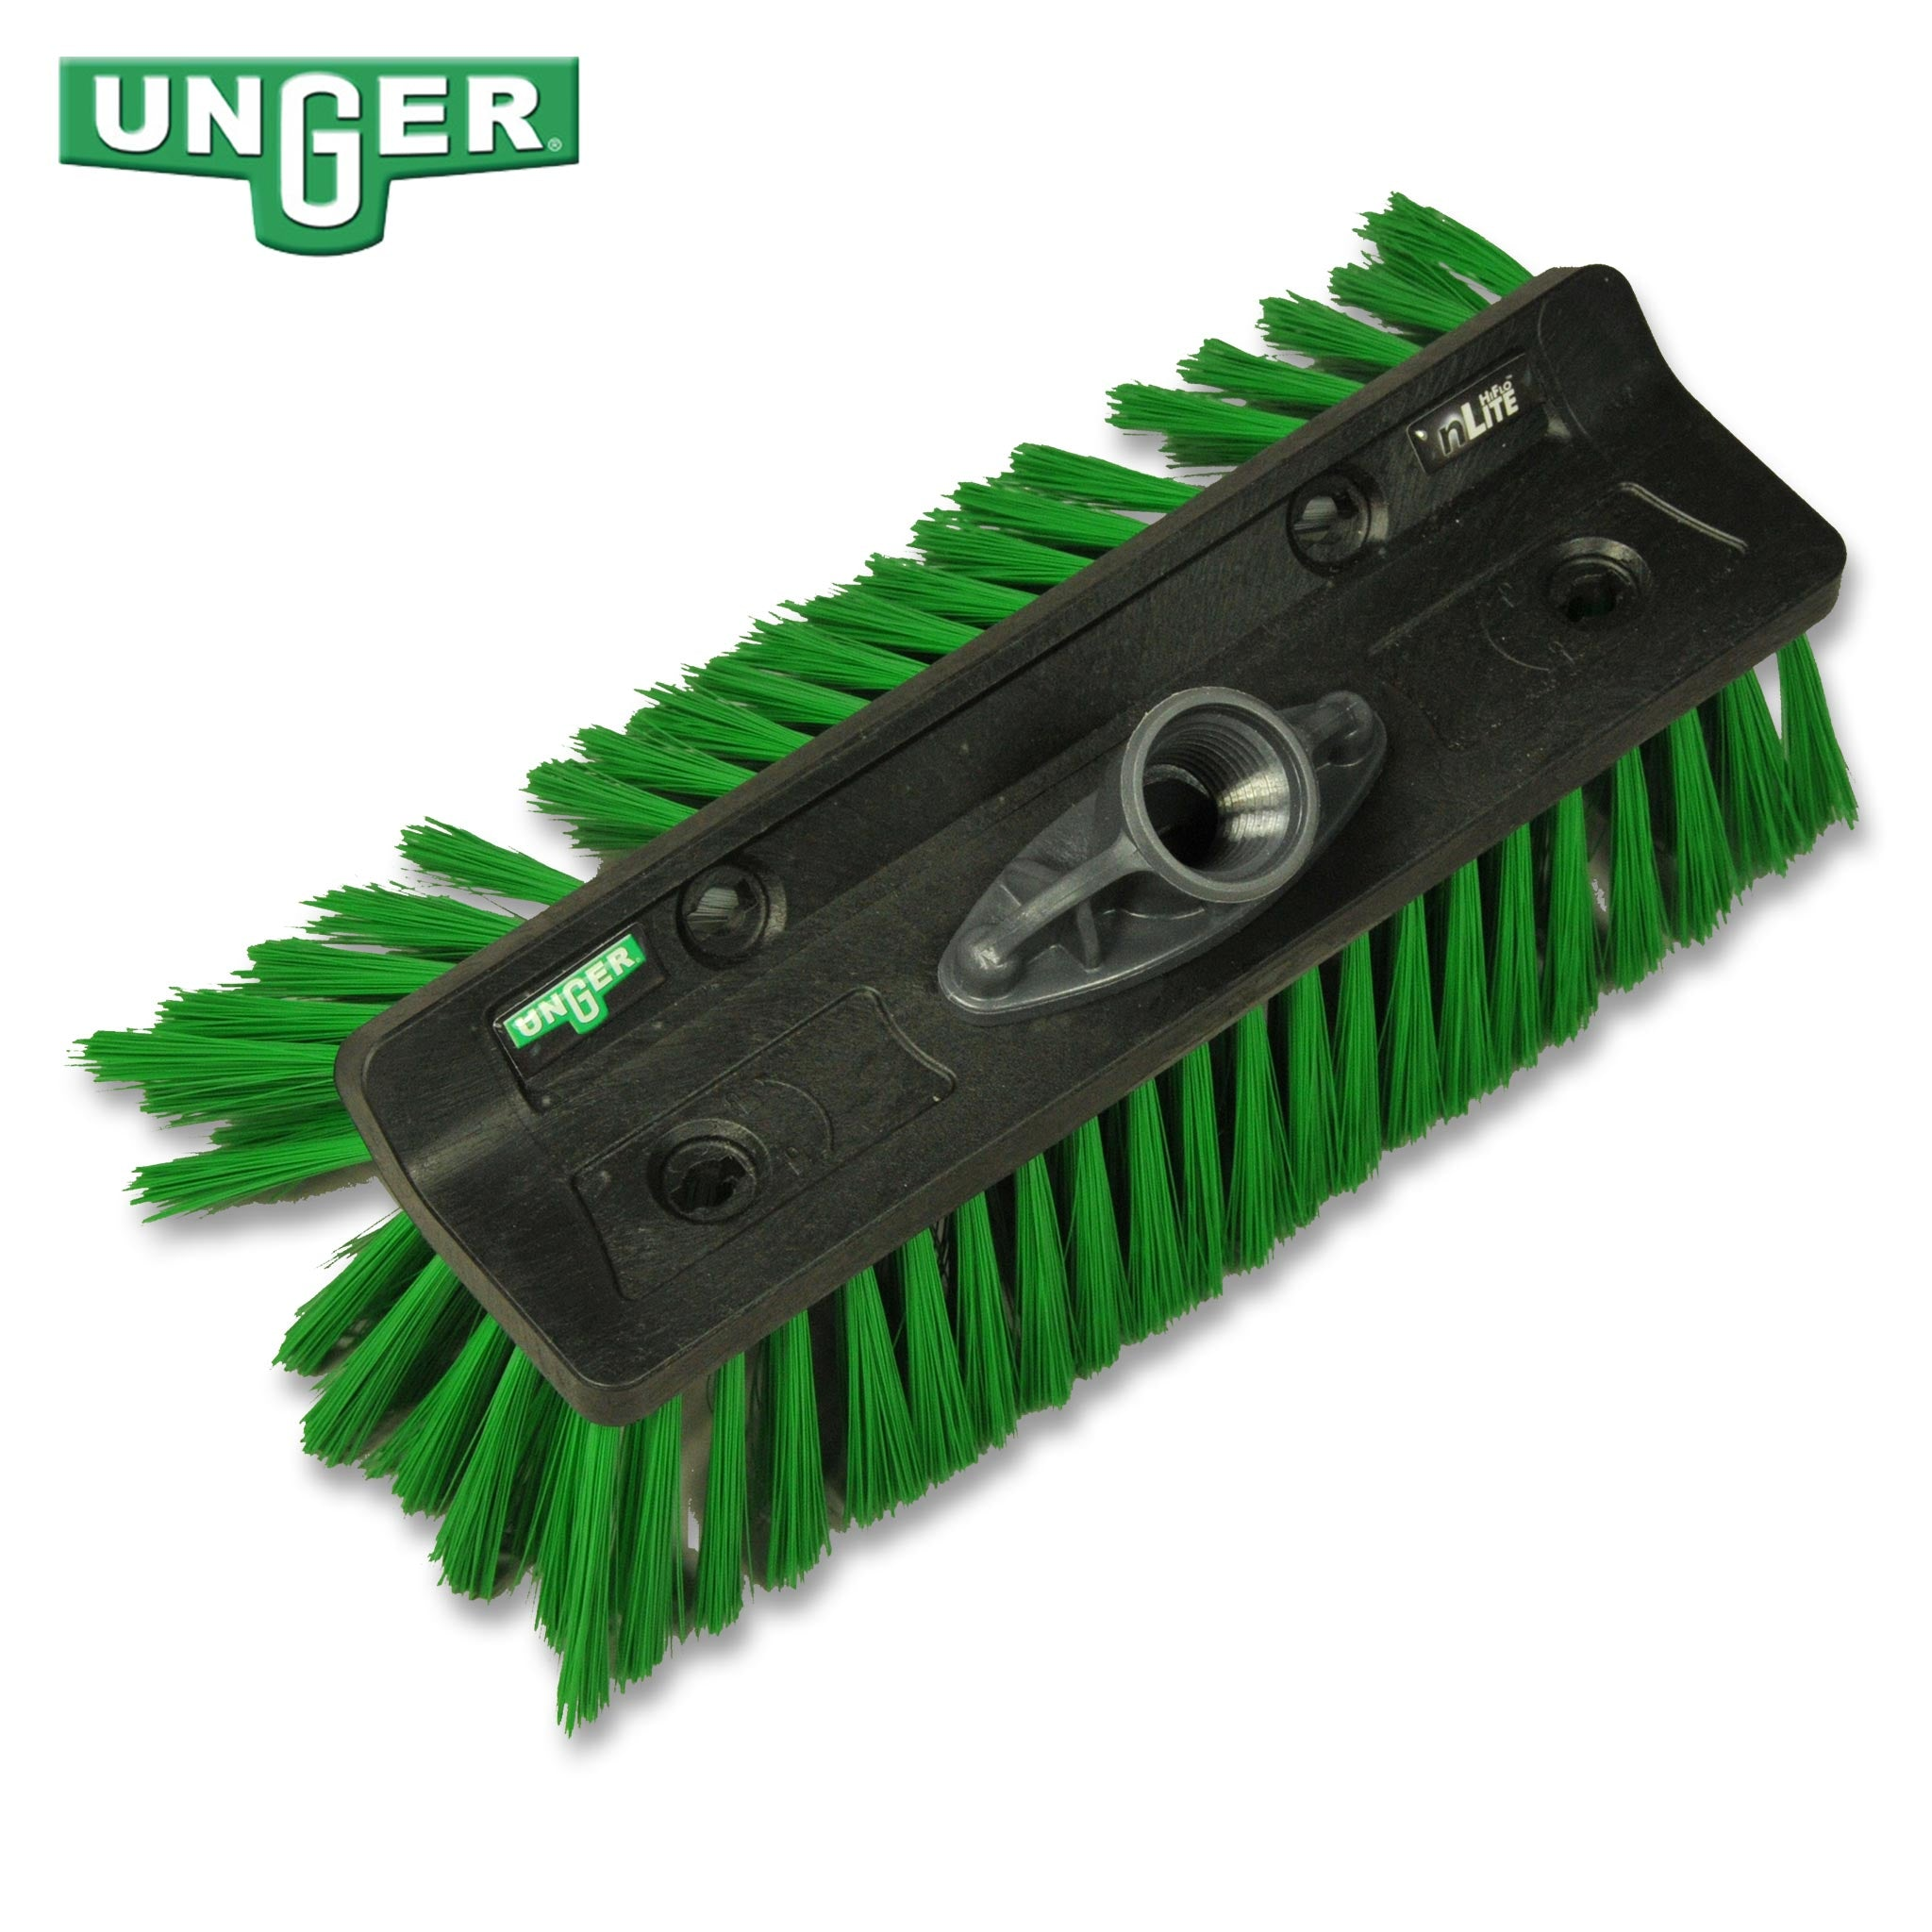 Unger nLite Pure Water Brushes